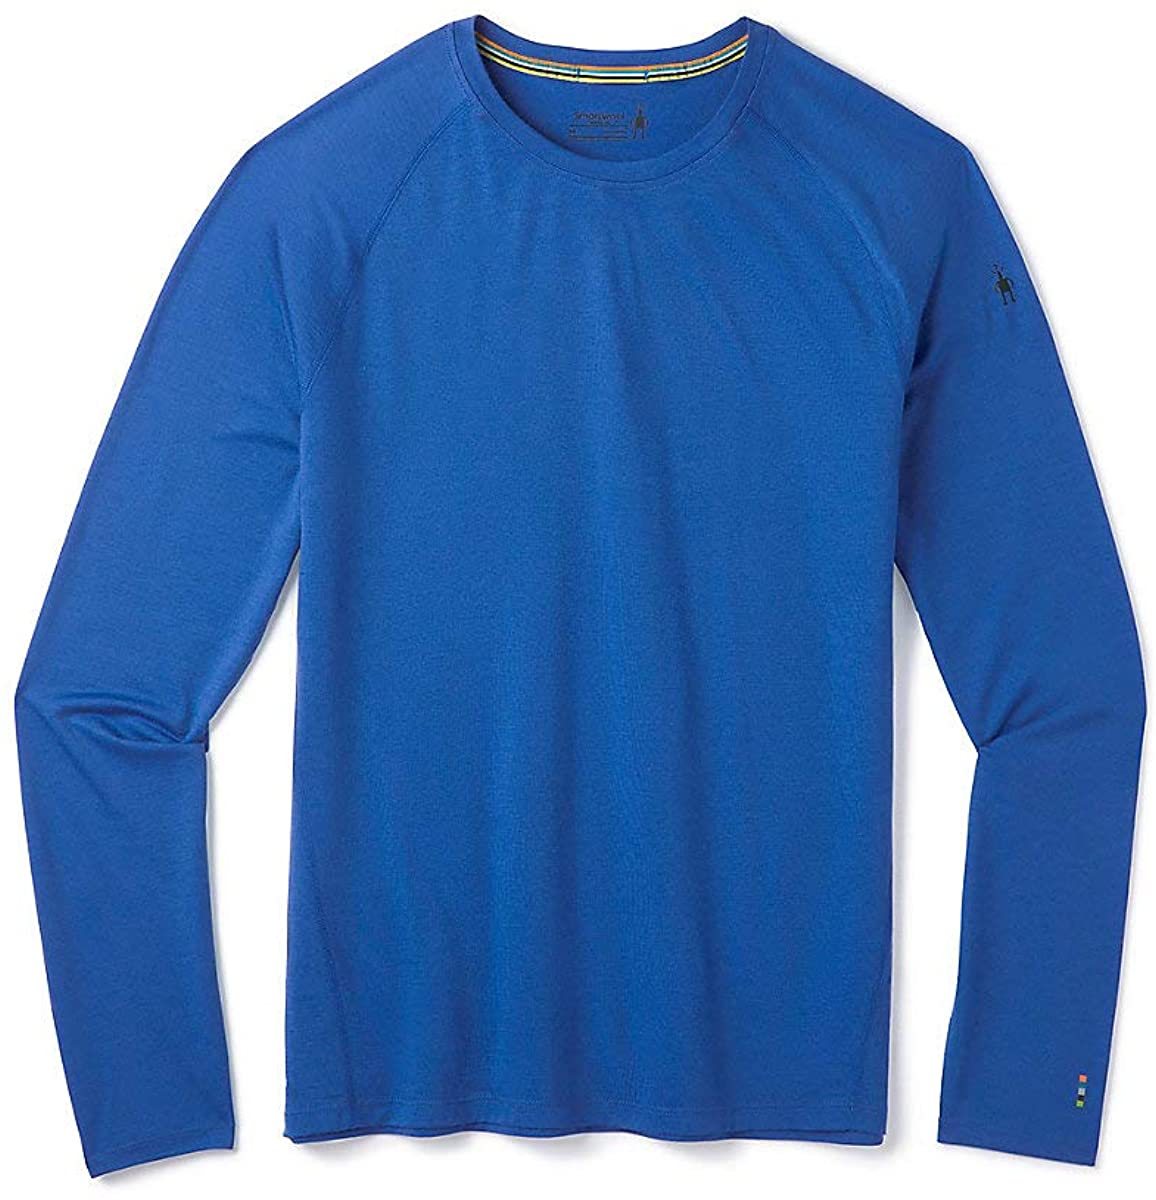 Men's Smartwool Merino 150 Base Layer Long Sleeve in Light Alpine Blue from the side view